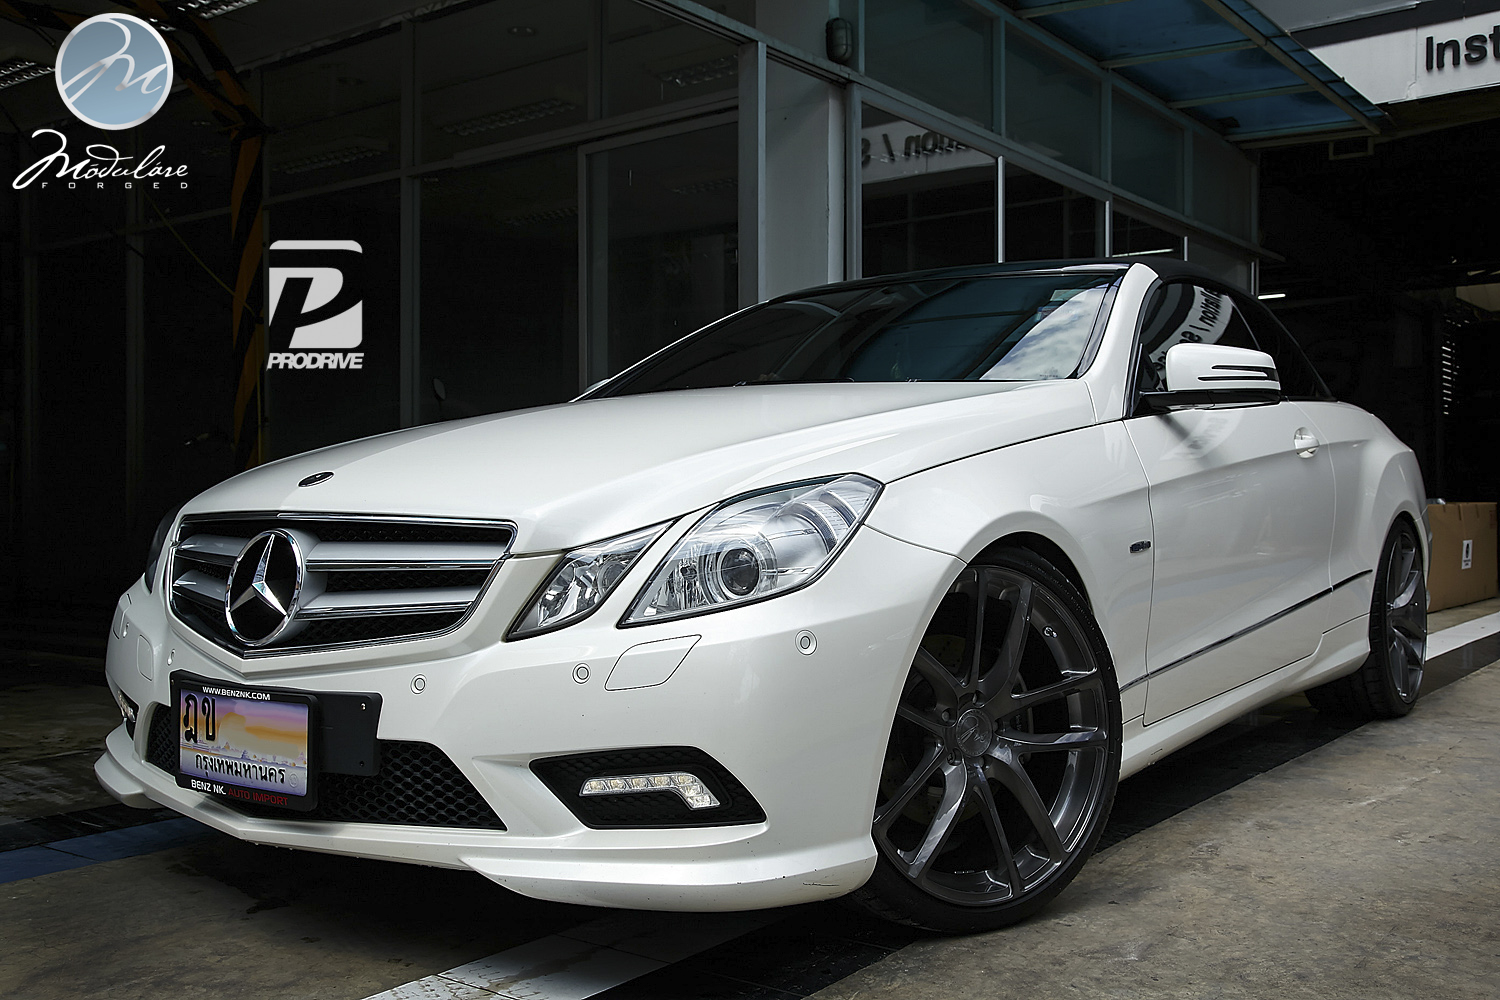 Modulare wheels prodrive shop mercedes benz w207 for Mercedes benz shop